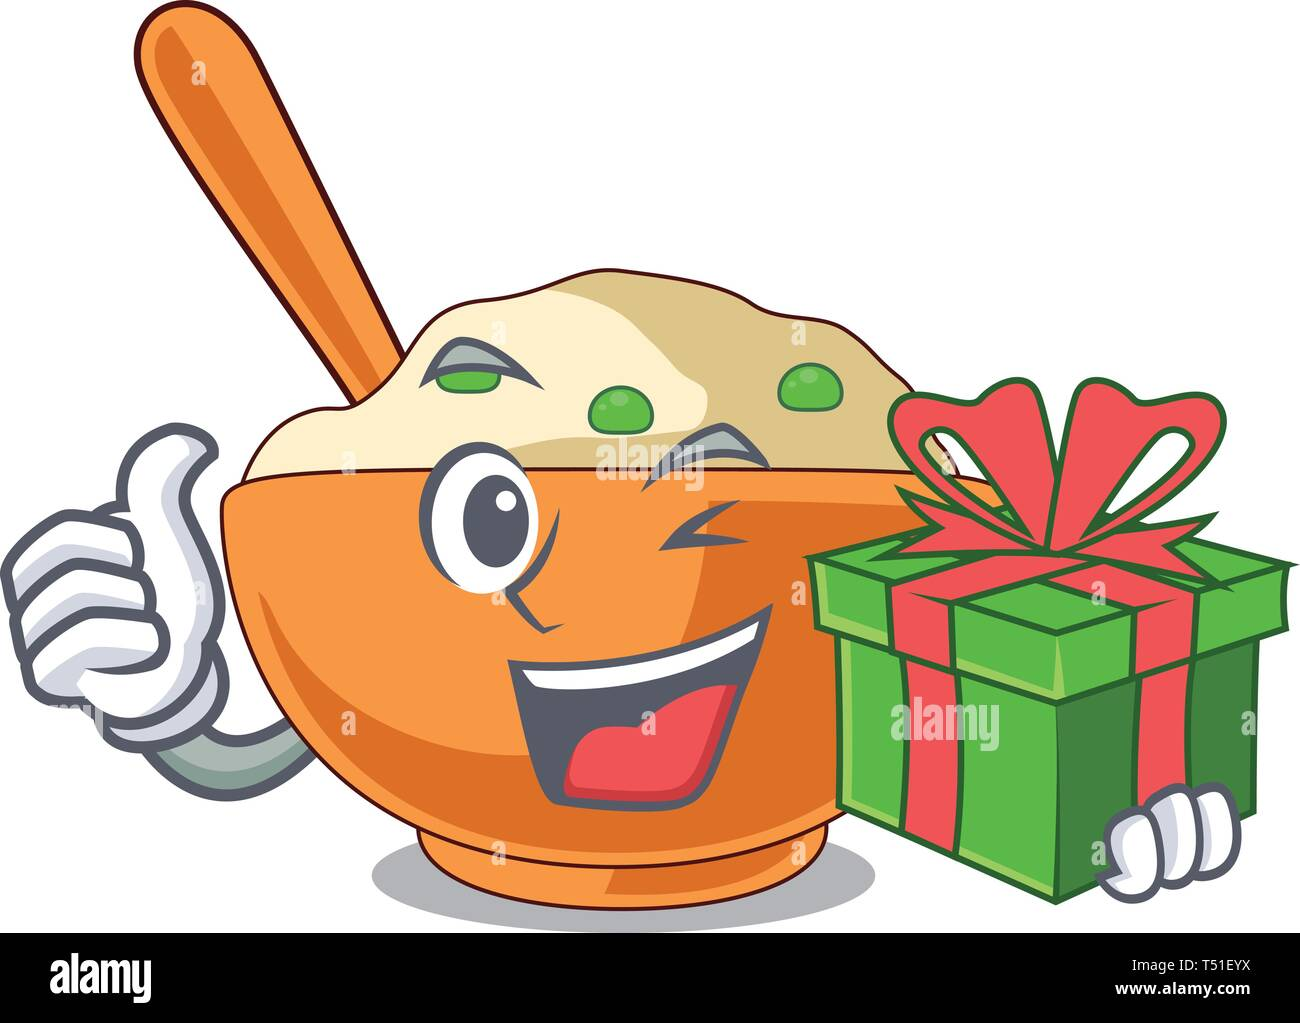 With gift mashed potato in the shape mascot - Stock Image